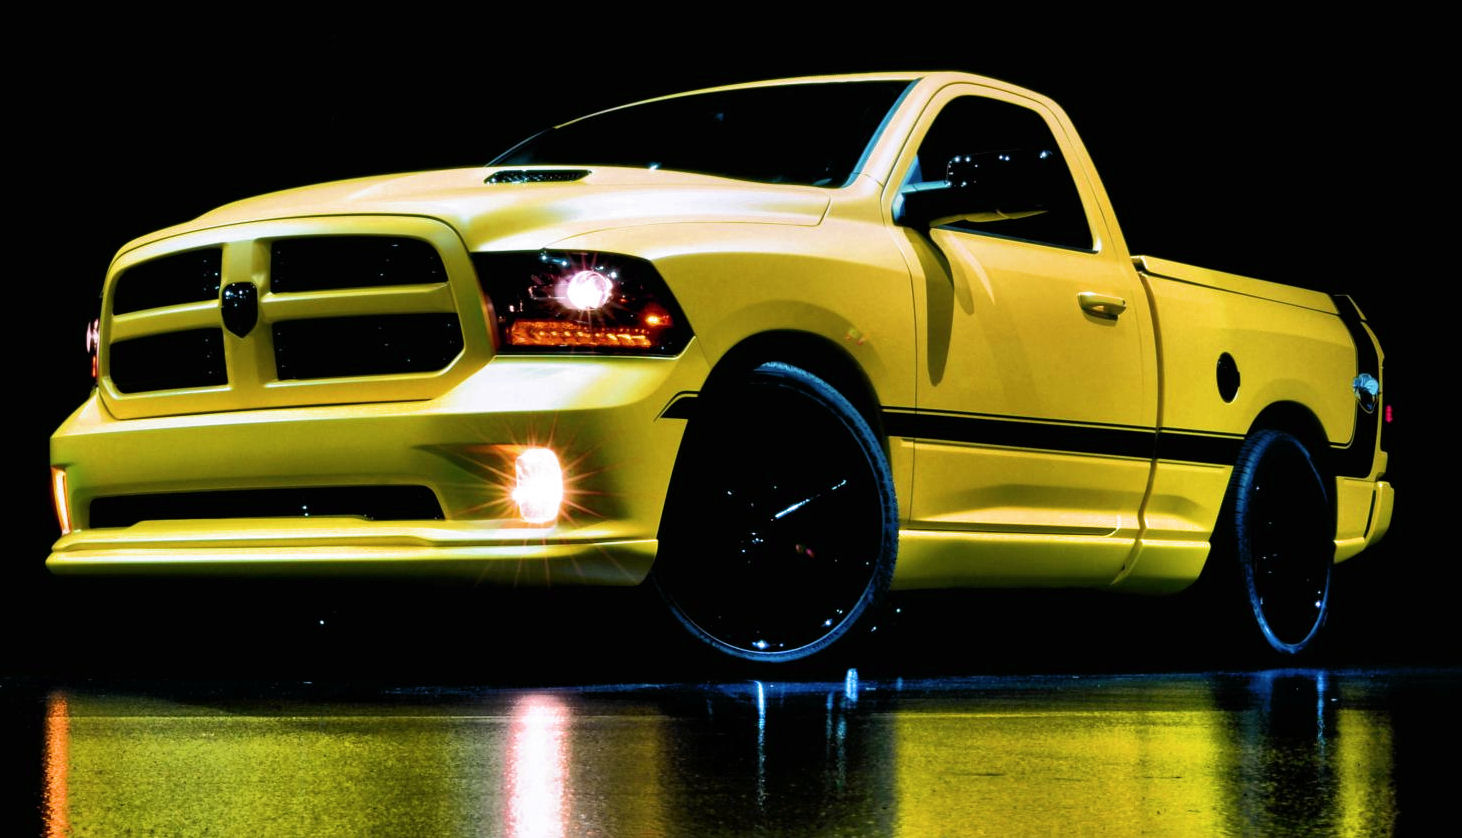 Chrysler RAM 1500 Rumble Bee Concept